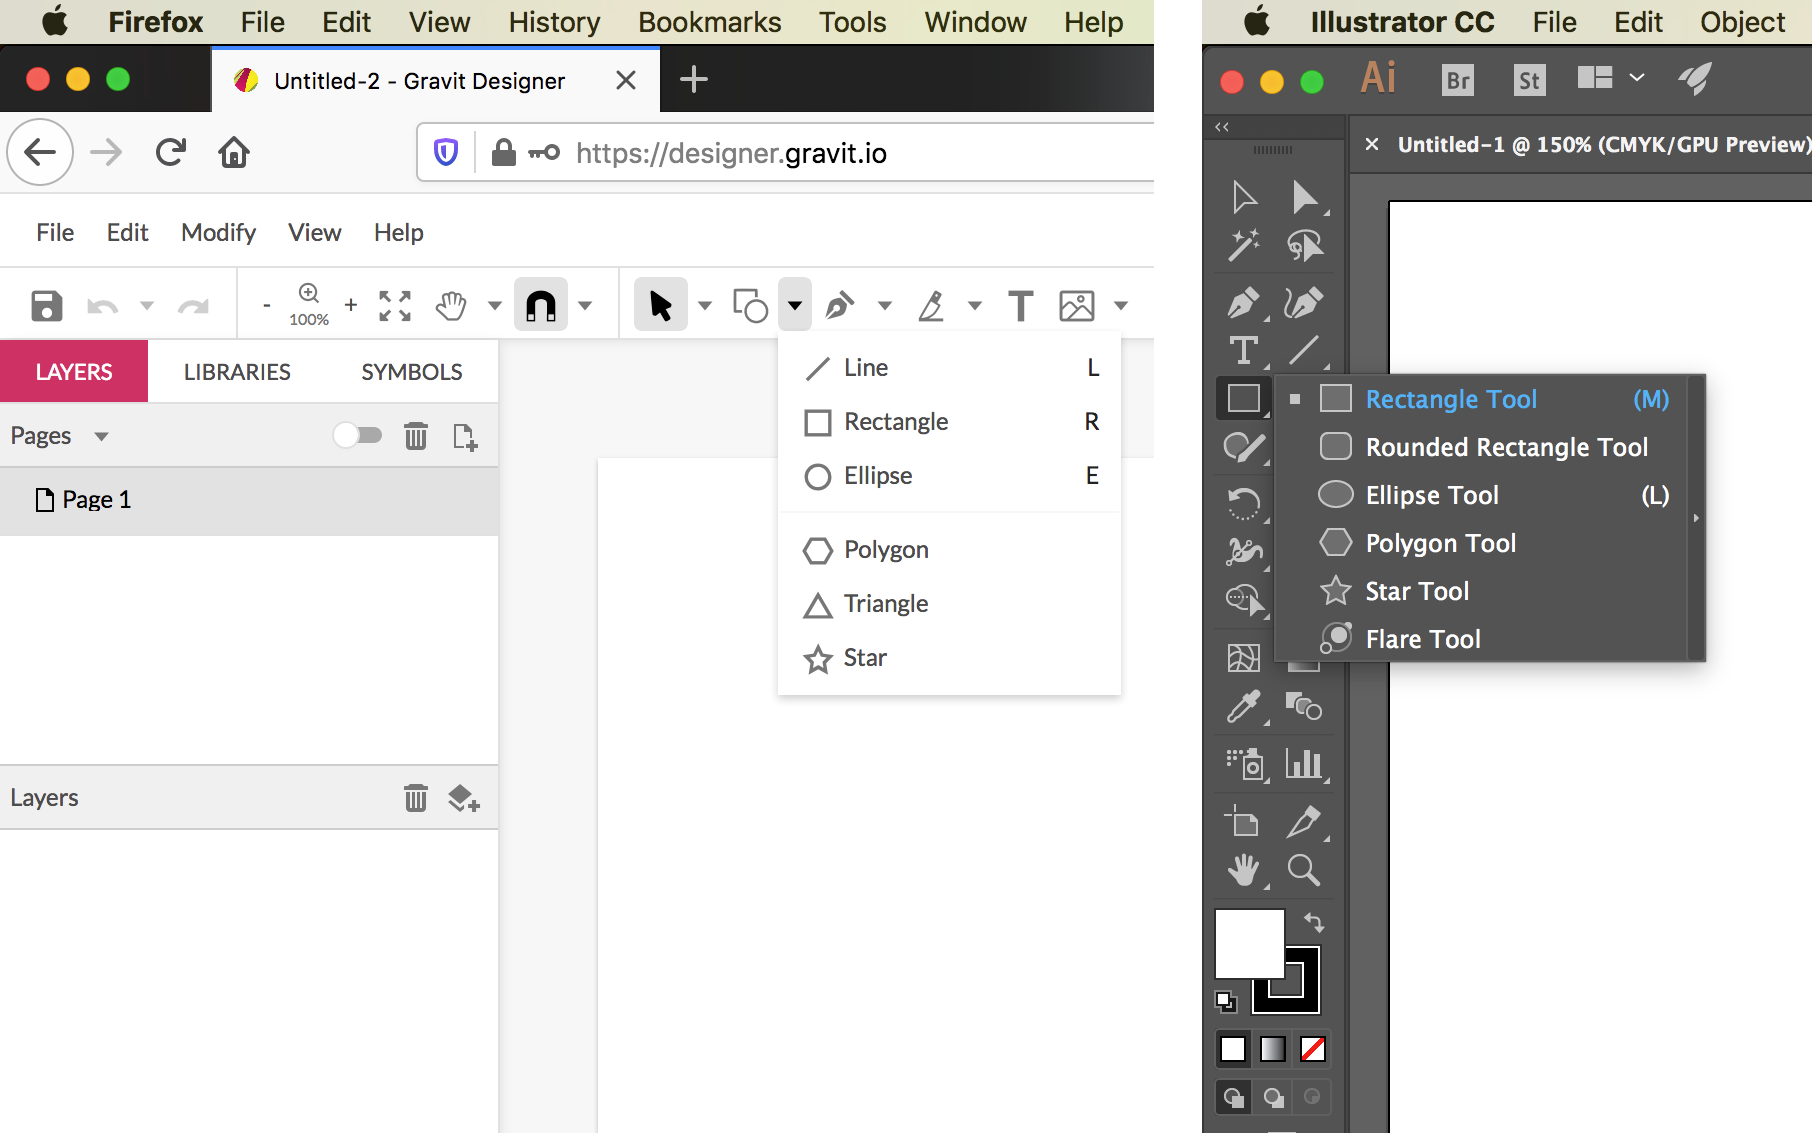 Two side-by-side screenshots of the Designer.io and Adobe Illustrator user interfaces, with the mouse cursor clicking on the Shape Tool, showing the tool options; the tool icon and options are similar, but not identical, and they are located in different areas of the interface.